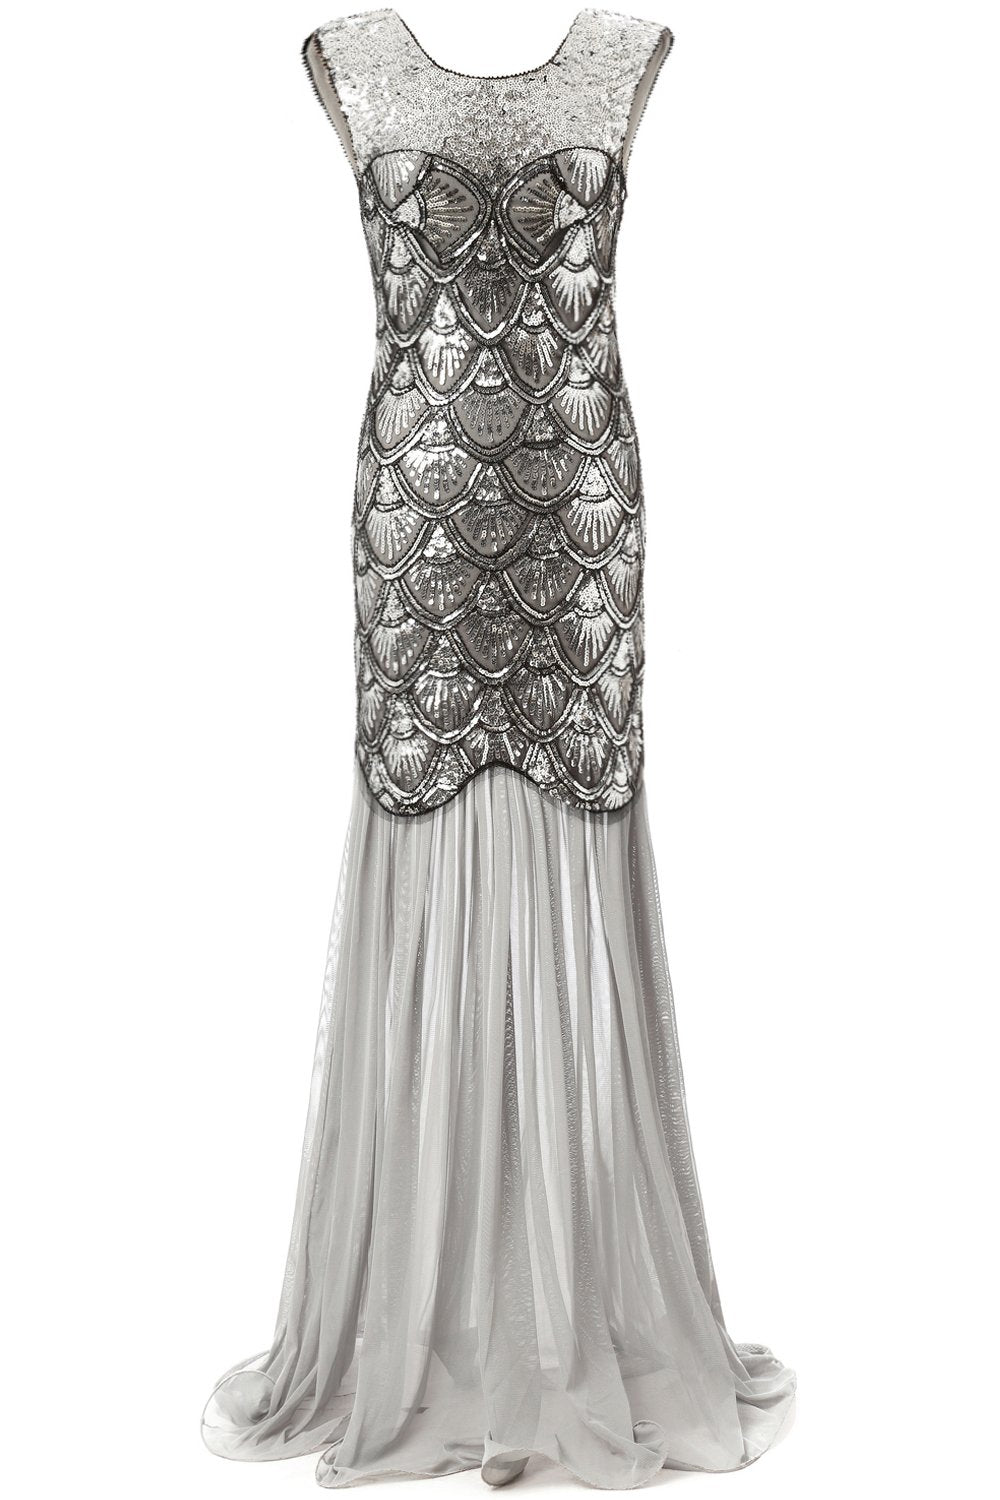 Long 1920s Sequin Dresses